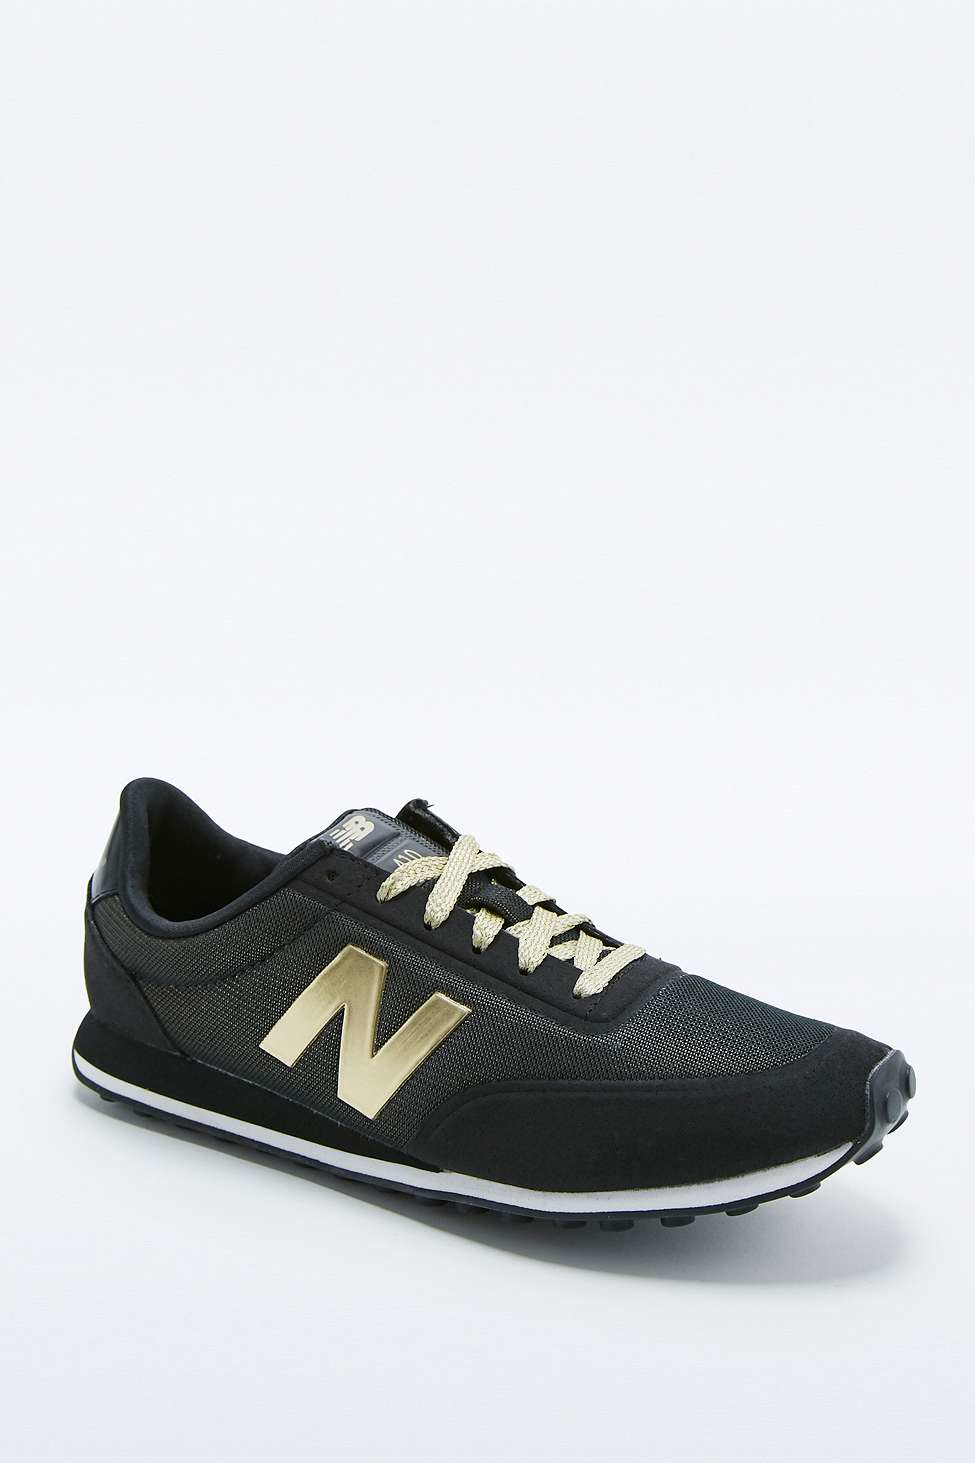 france new balance 410 womens black and gold 5fa5c 88dec